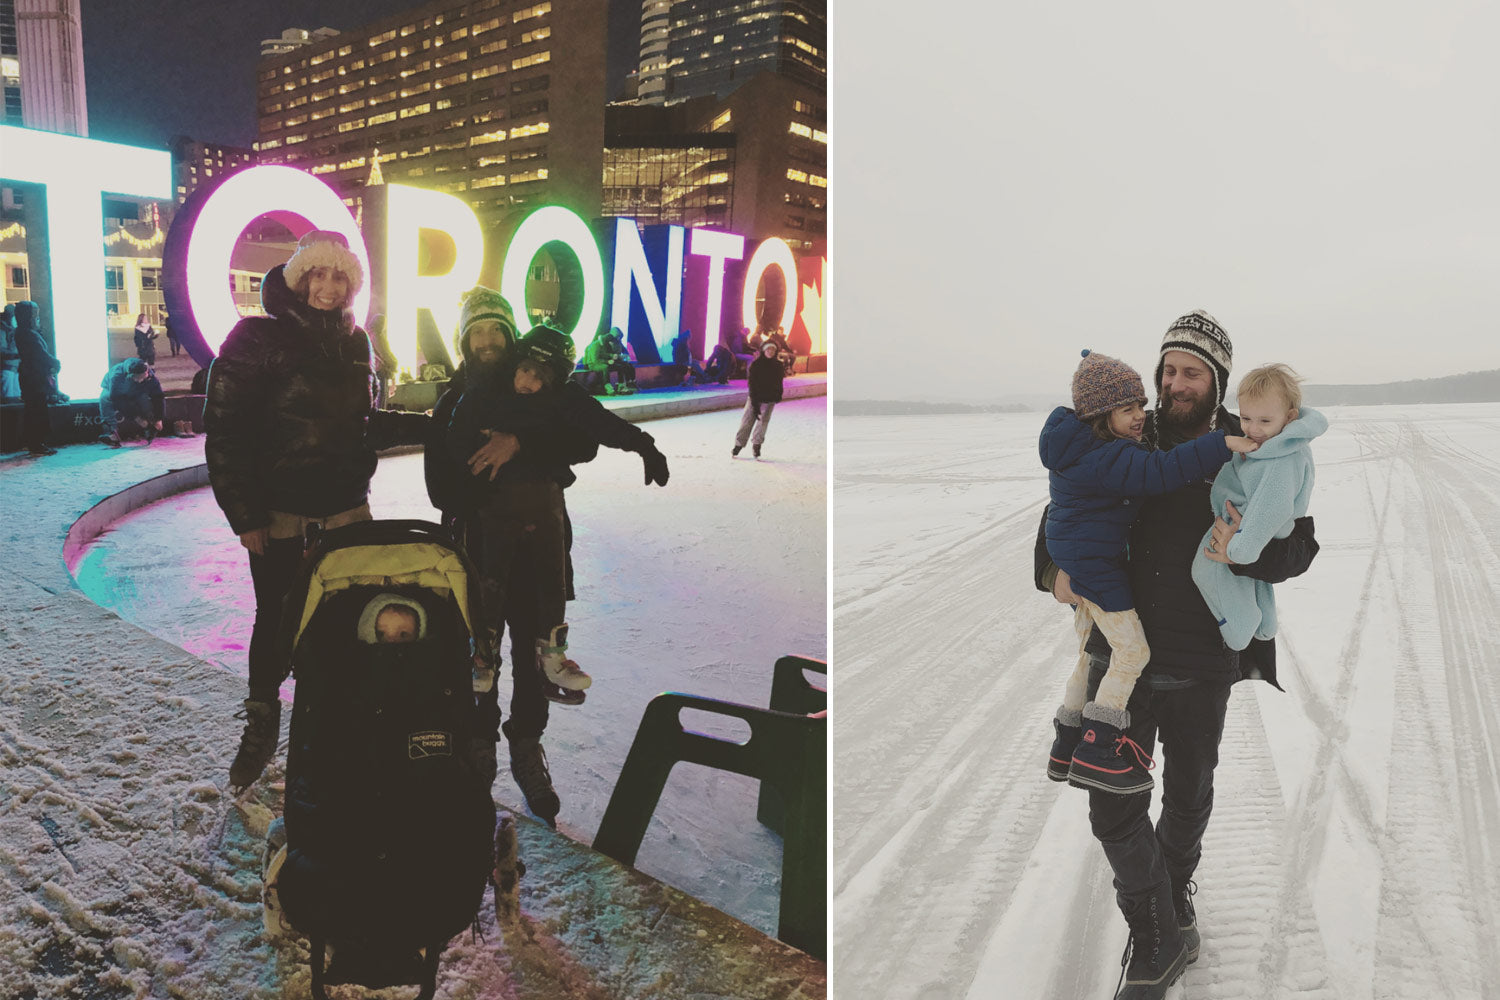 Travel with kids - Toronto